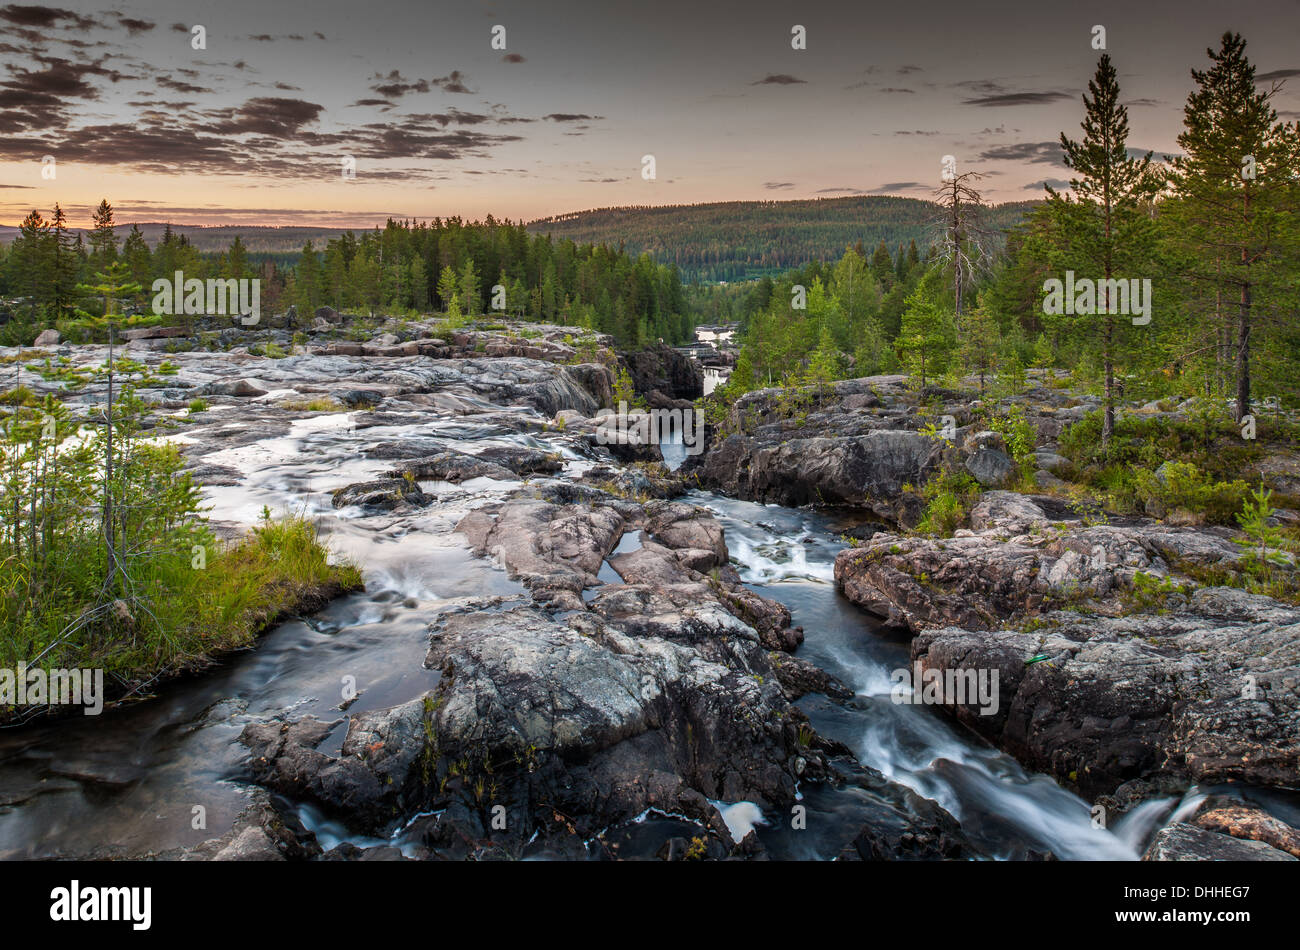 River flowing through gorge, Storforsen, Lapland, Sweden - Stock Image